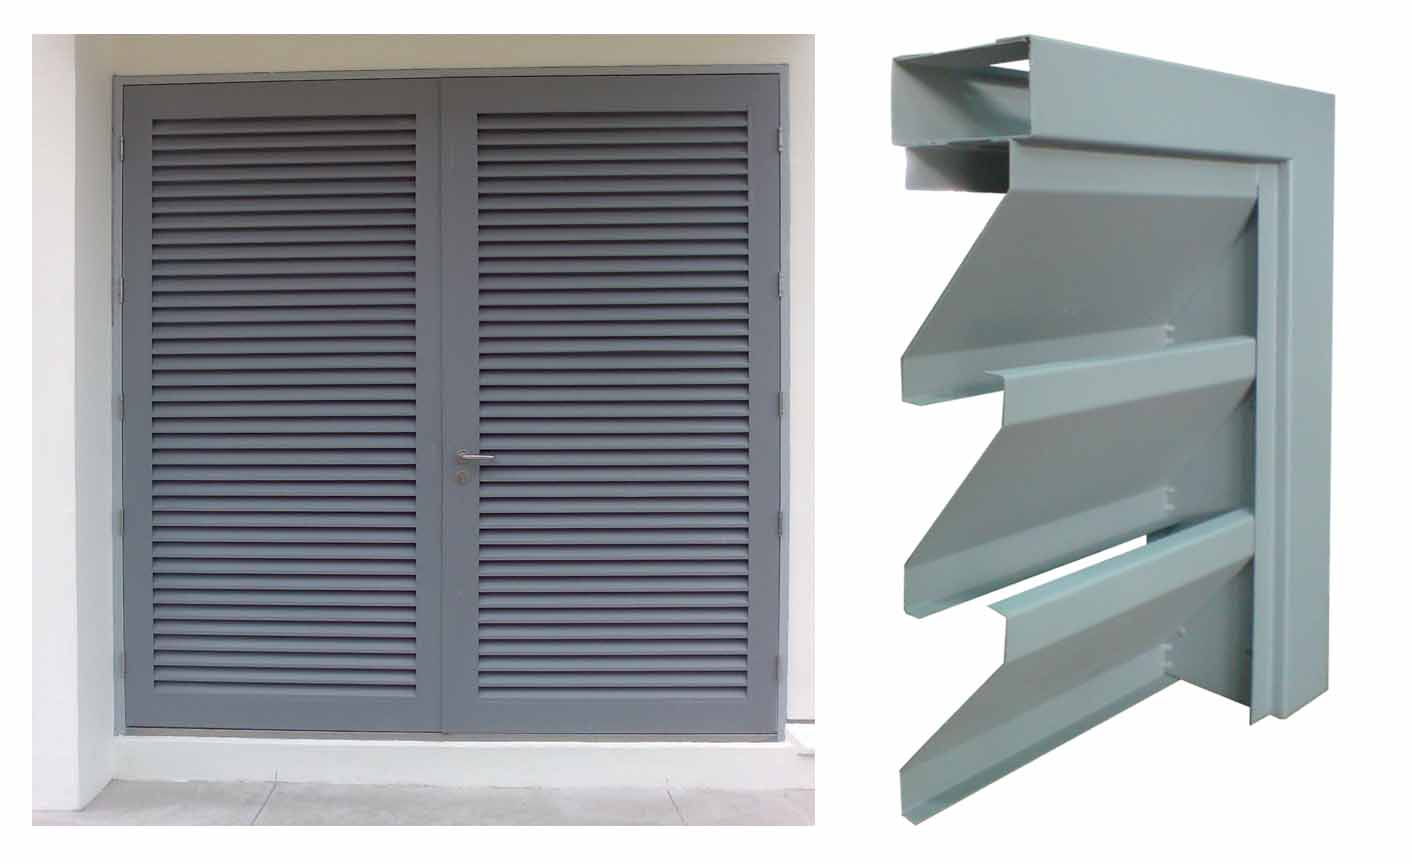 A major application is the storm louver used in the outside wall of a building for air intake or exhaust.  sc 1 st  about mechanical engineering & LOUVERS BASIC DEFINITION INFORMATION AND TUTORIALS | ALL ABOUT ...